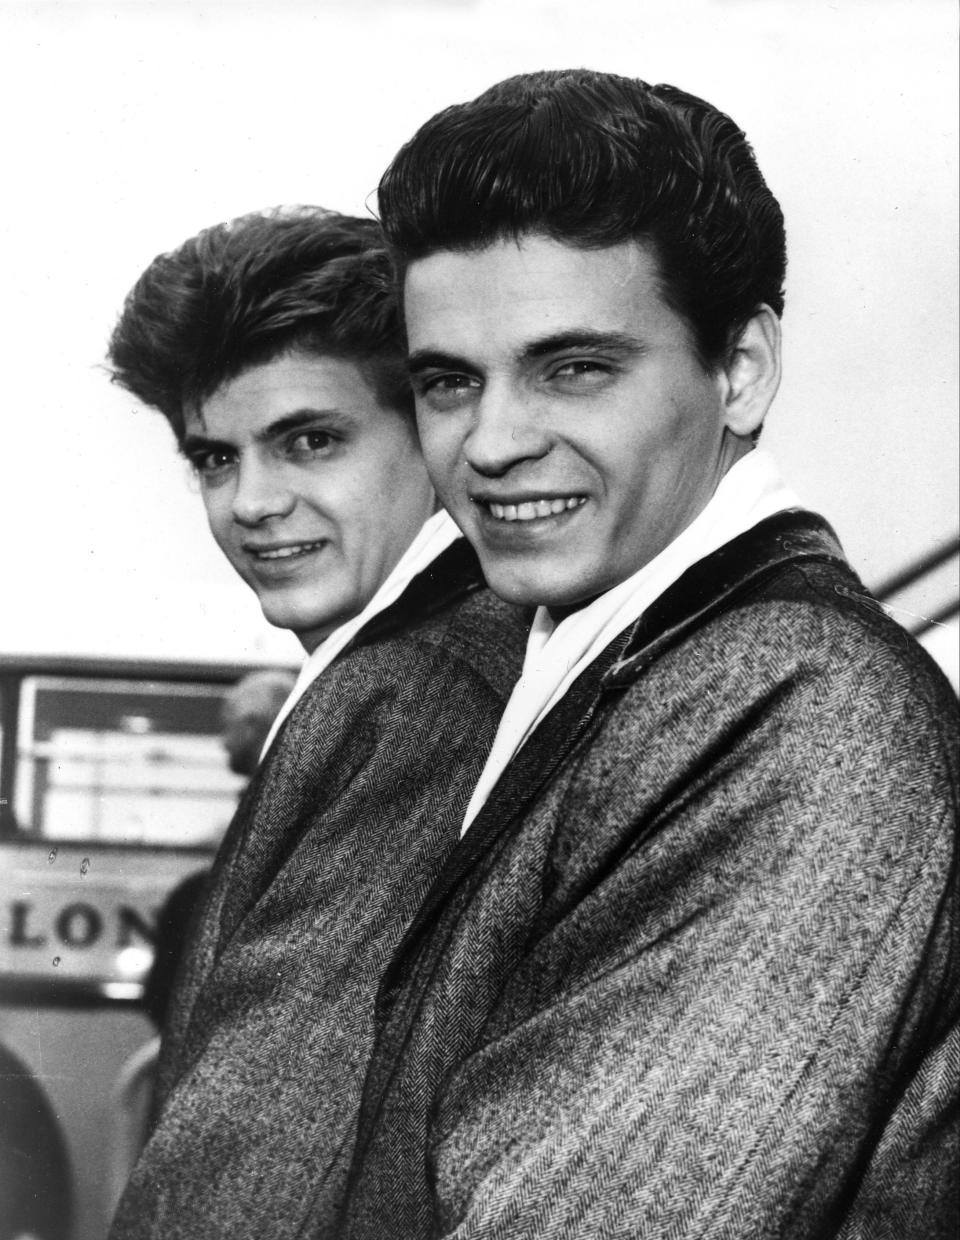 FILE - In this April 1, 1960 file photo, Phil, left, and Don of the Everly Brothers arrive at London Airport from New York to begin their European tour. Don Everly, one-half of the pioneering rock 'n' roll Everly Brothers whose harmonizing country rock hits impacted a generation of rock music, has died. He was 84. A family spokesperson said Everly died at his home in Nashville, Tennessee on Saturday, Aug. 21, 2021. (AP Photo, File)